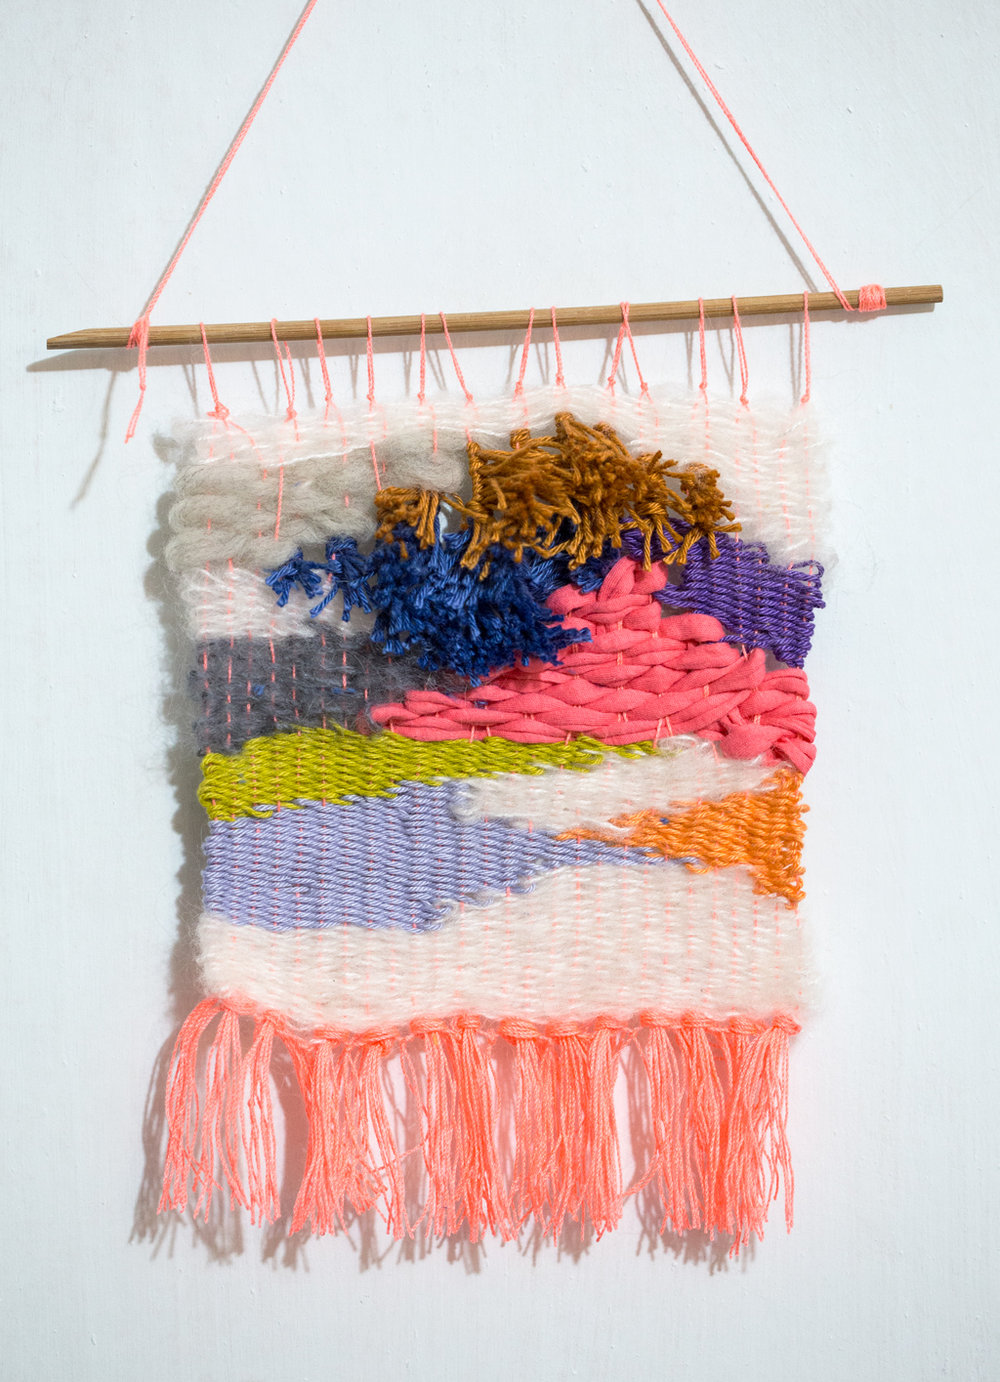 Weaving with recycled yarn